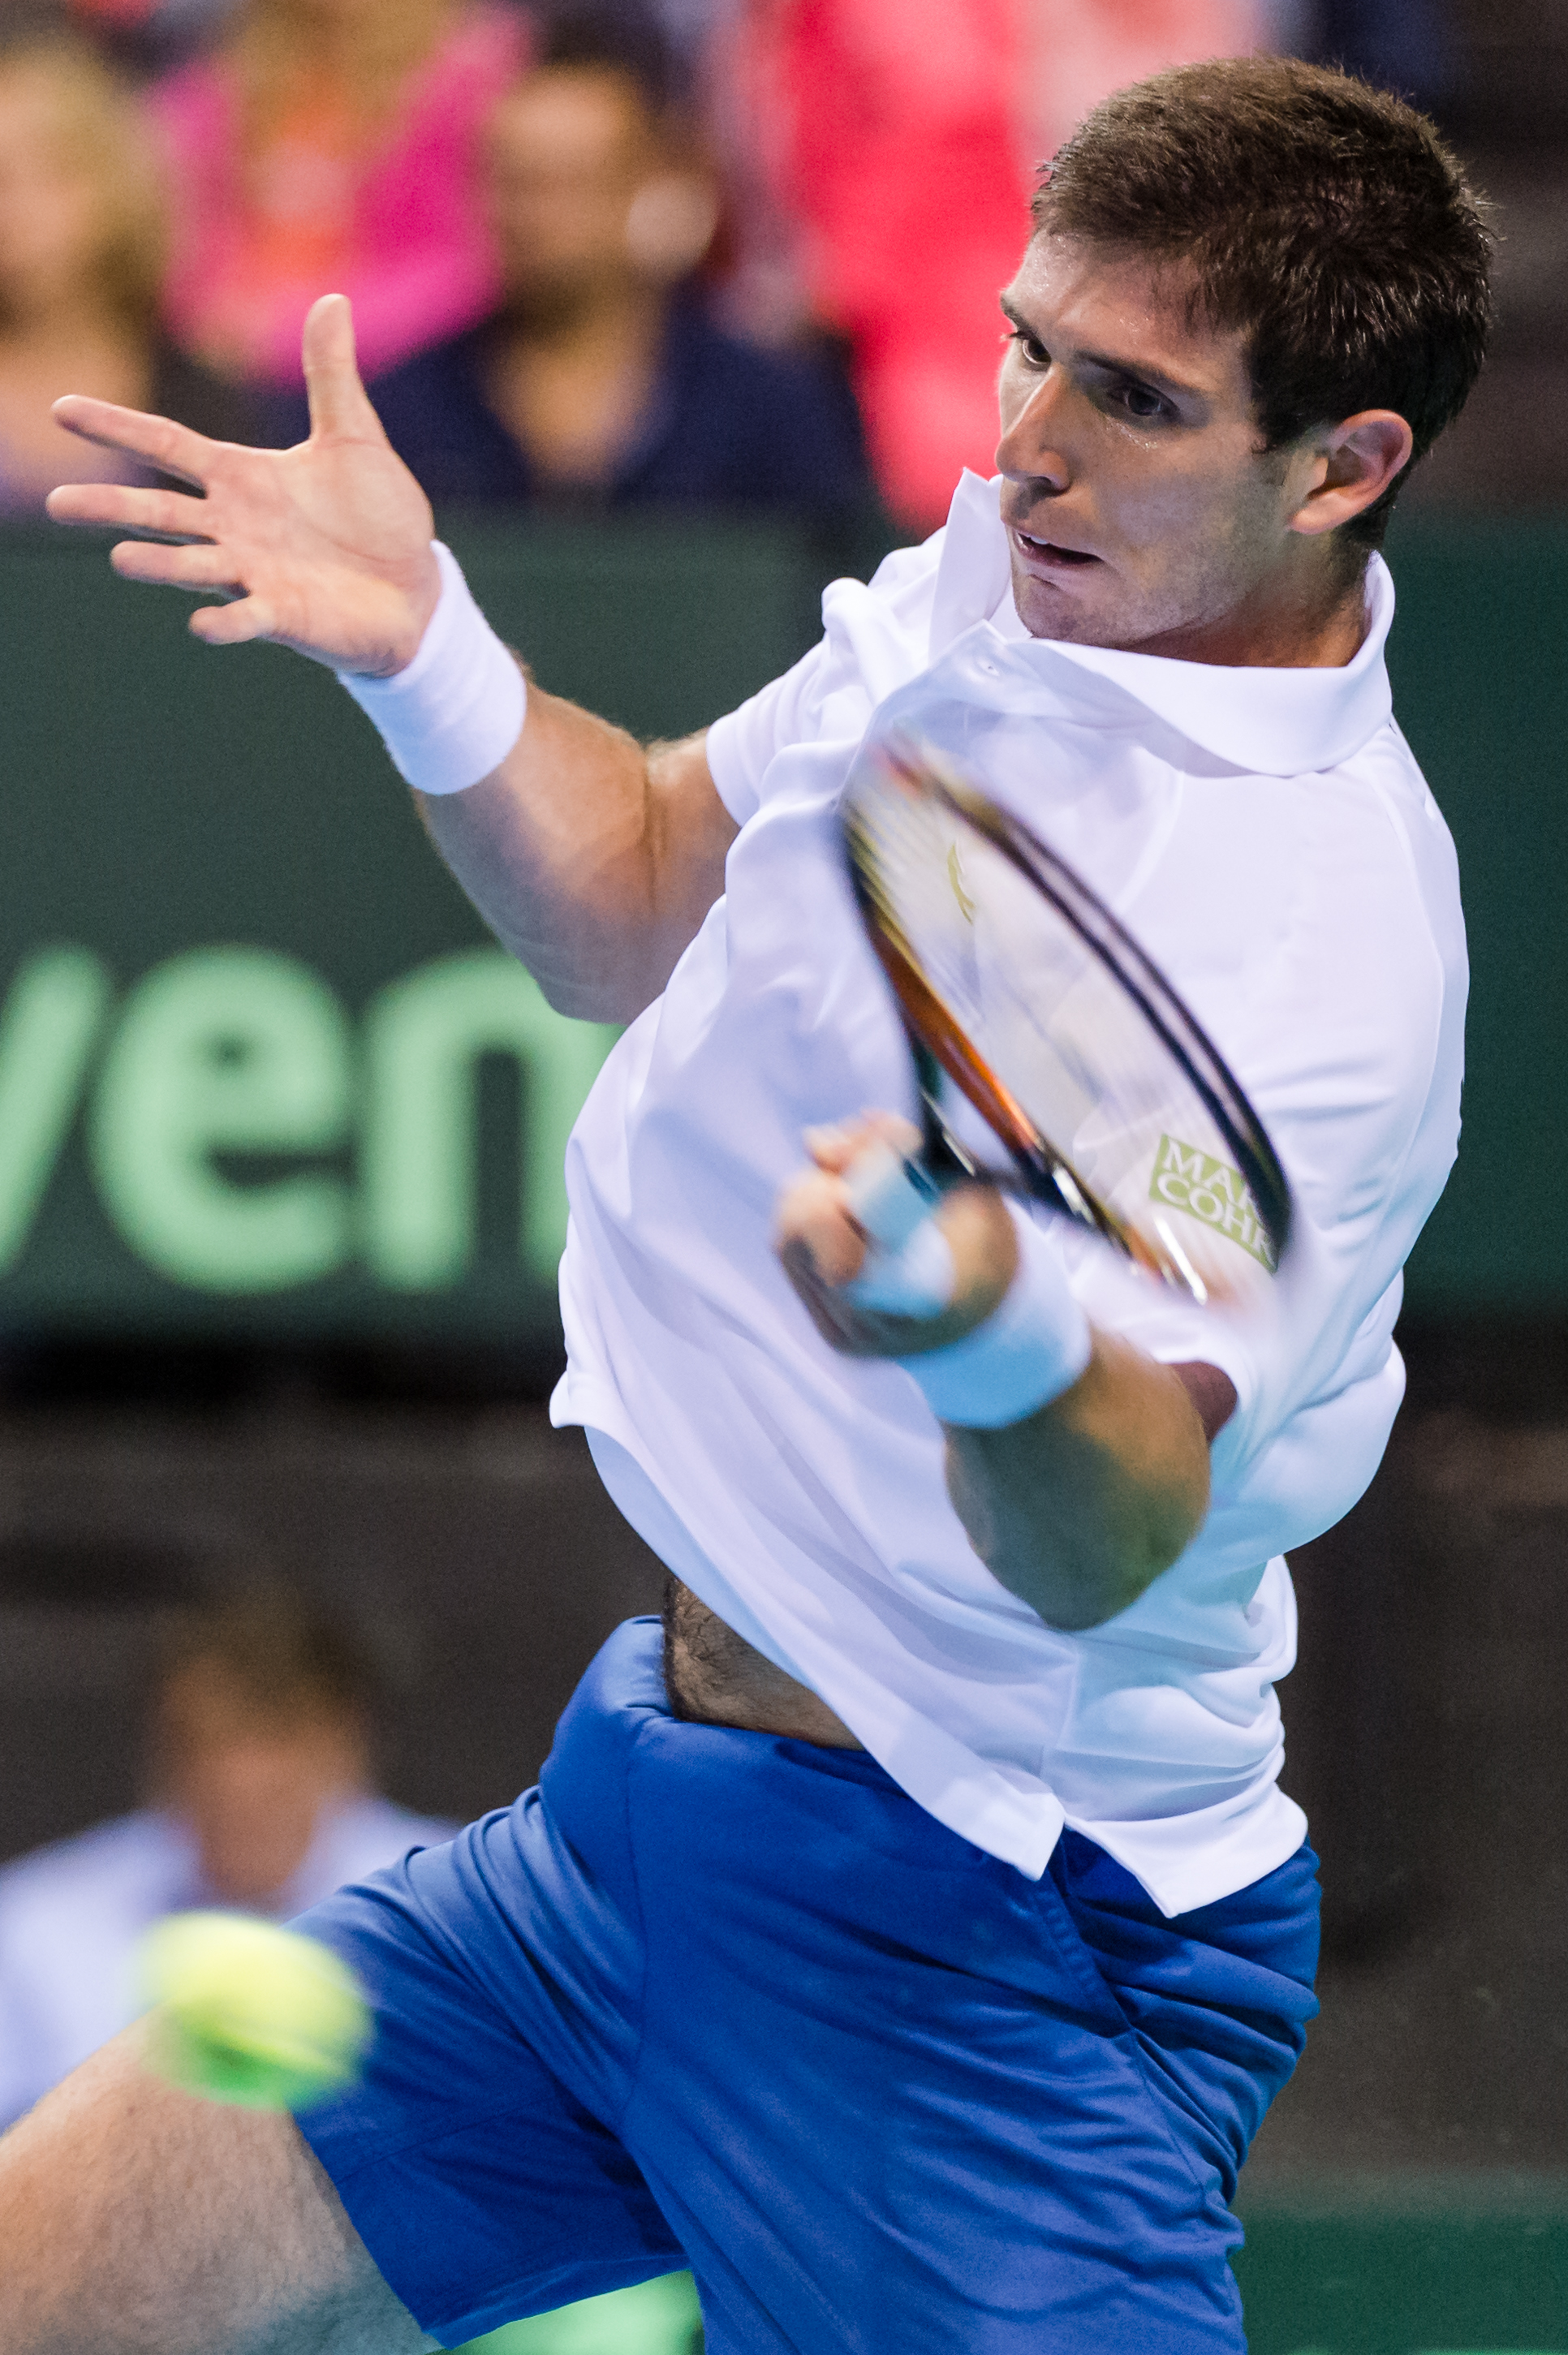 Argentina's Federico Delbonis returns the ball to Belgium's David Goffin during the first singles match of the Davis Cup World Group semifinal between Belgium and Argentina in Brussels, Friday, Sept. 18, 2015. (AP Photo/Geert Vanden Wijngaert)